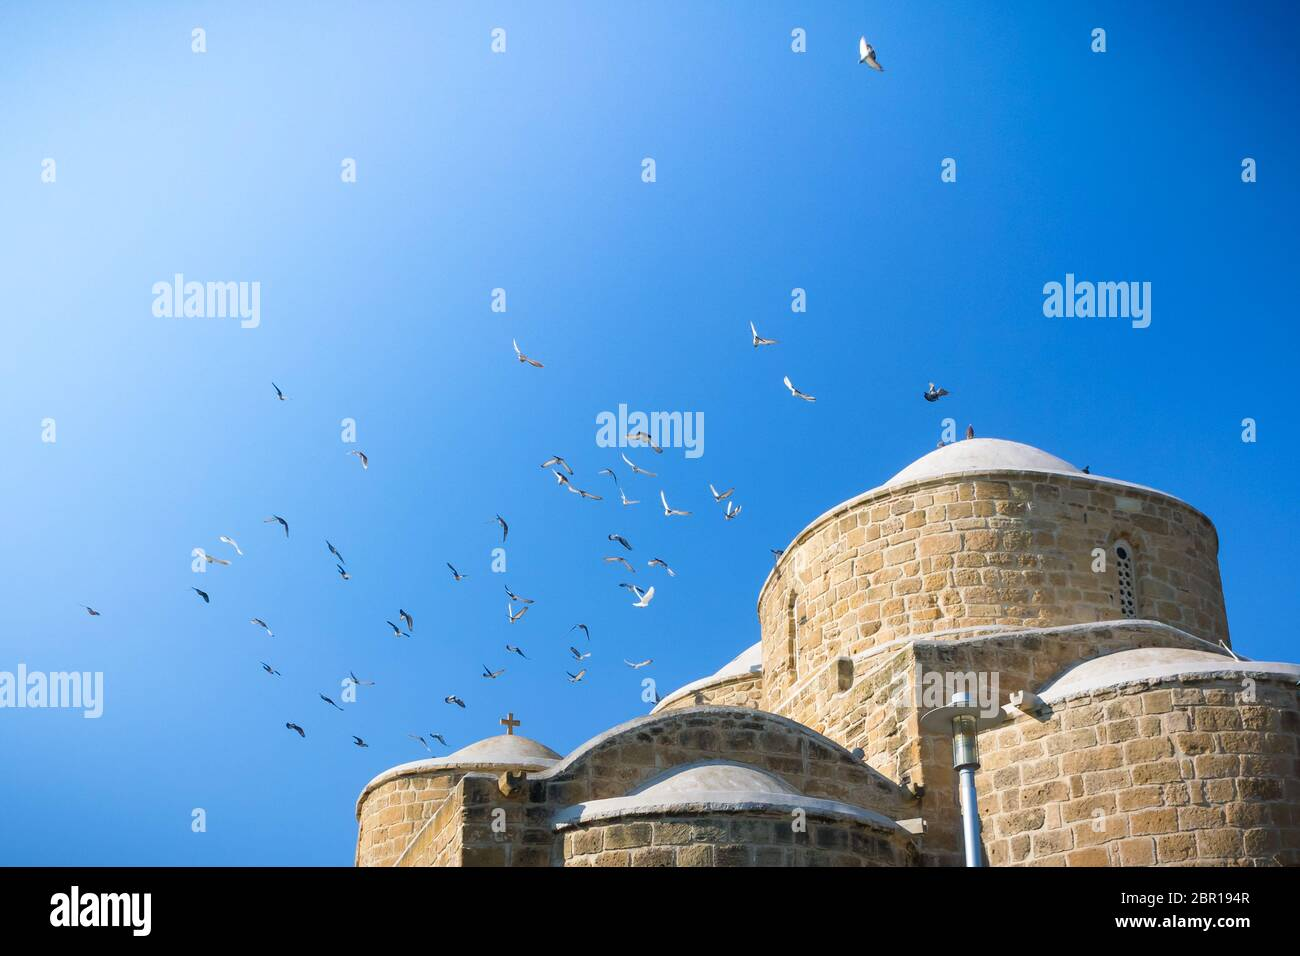 Flock of pigeons flying above the Church of the Apostles Barnabas and Hilarion (Agii Varnavas and Ilarionas) in Peristerona, Cyprus Stock Photo